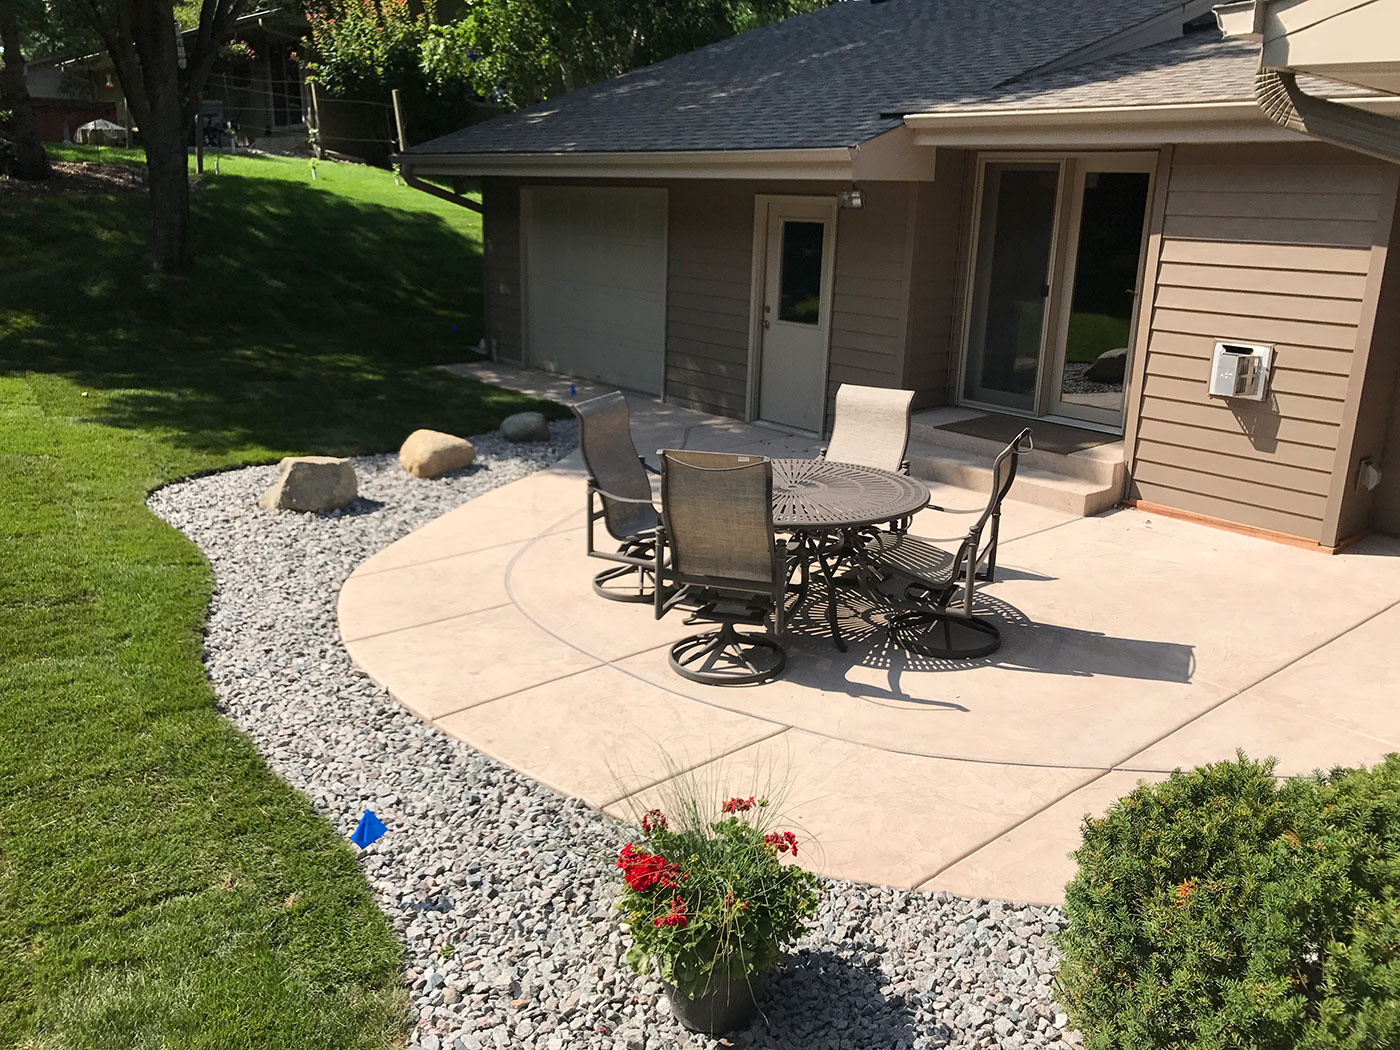 Create any shape that you would like in your backyard with stamped concrete get the look and texture of a stone patio with a stamped concrete patio